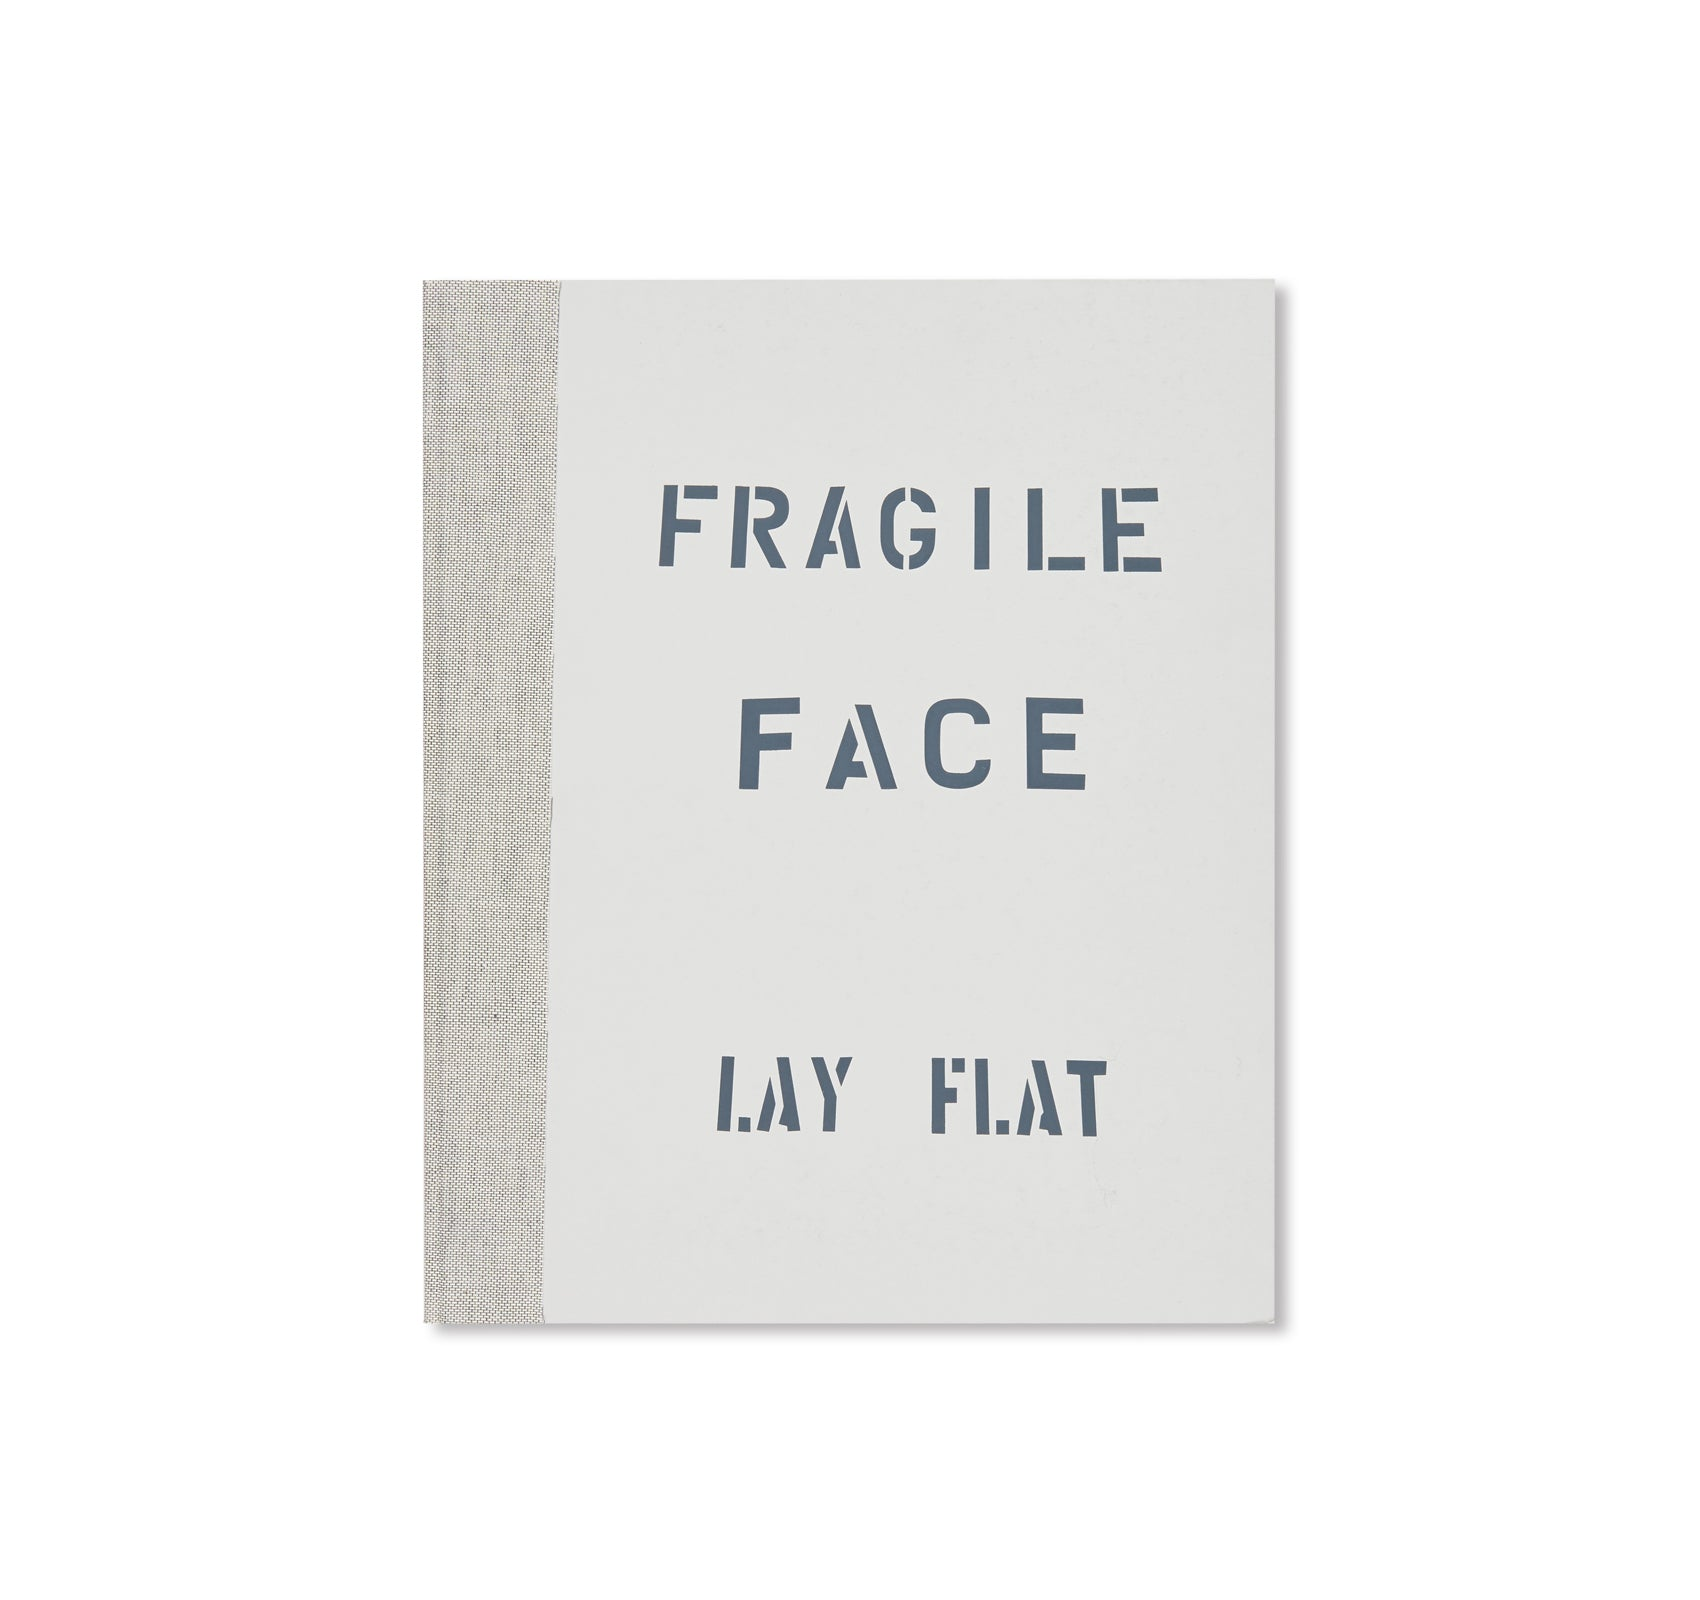 FRAGILE FACE LAY FLAT by Venetia Scott [SIGNED]